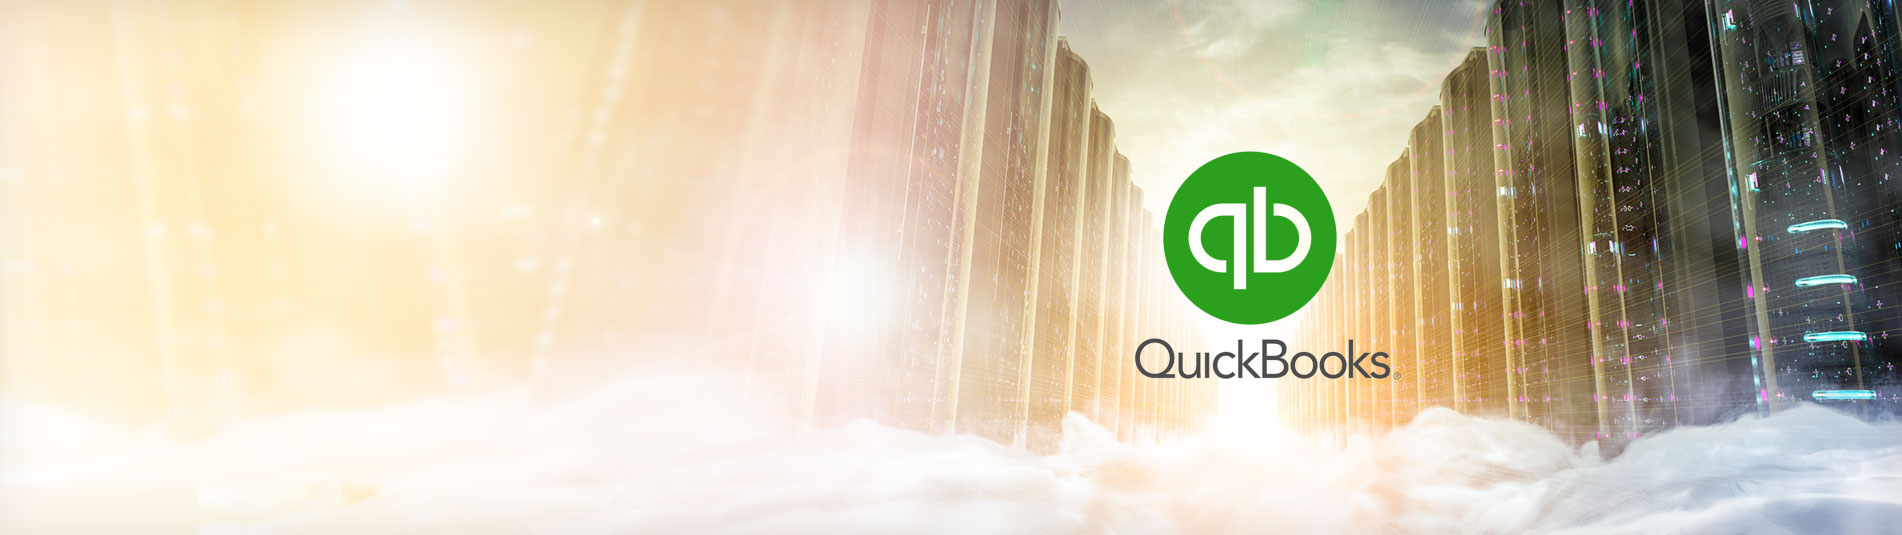 quickbooks-hosting-on-cloud-server